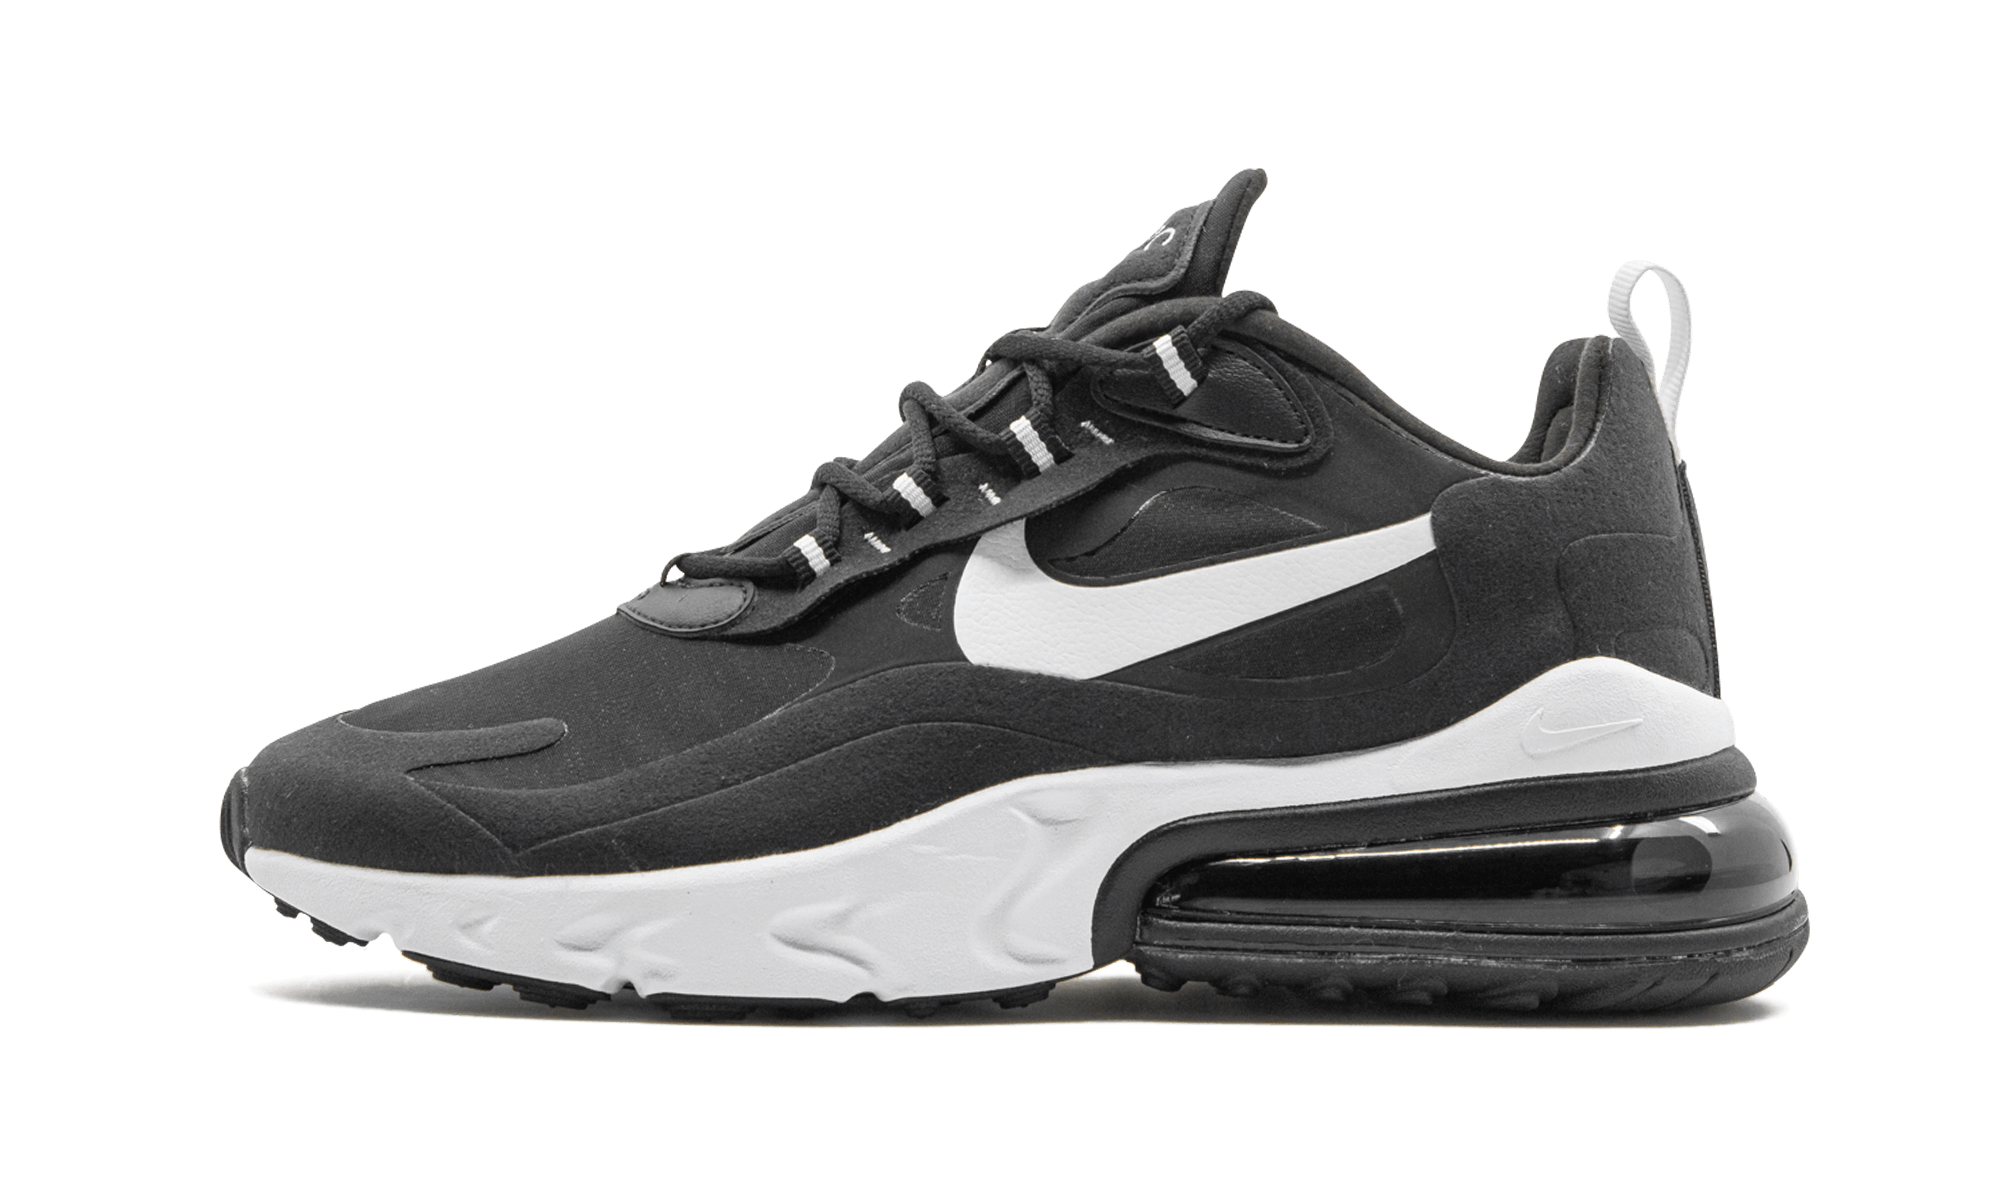 Nike Air Max 270 Black - CI3866-004